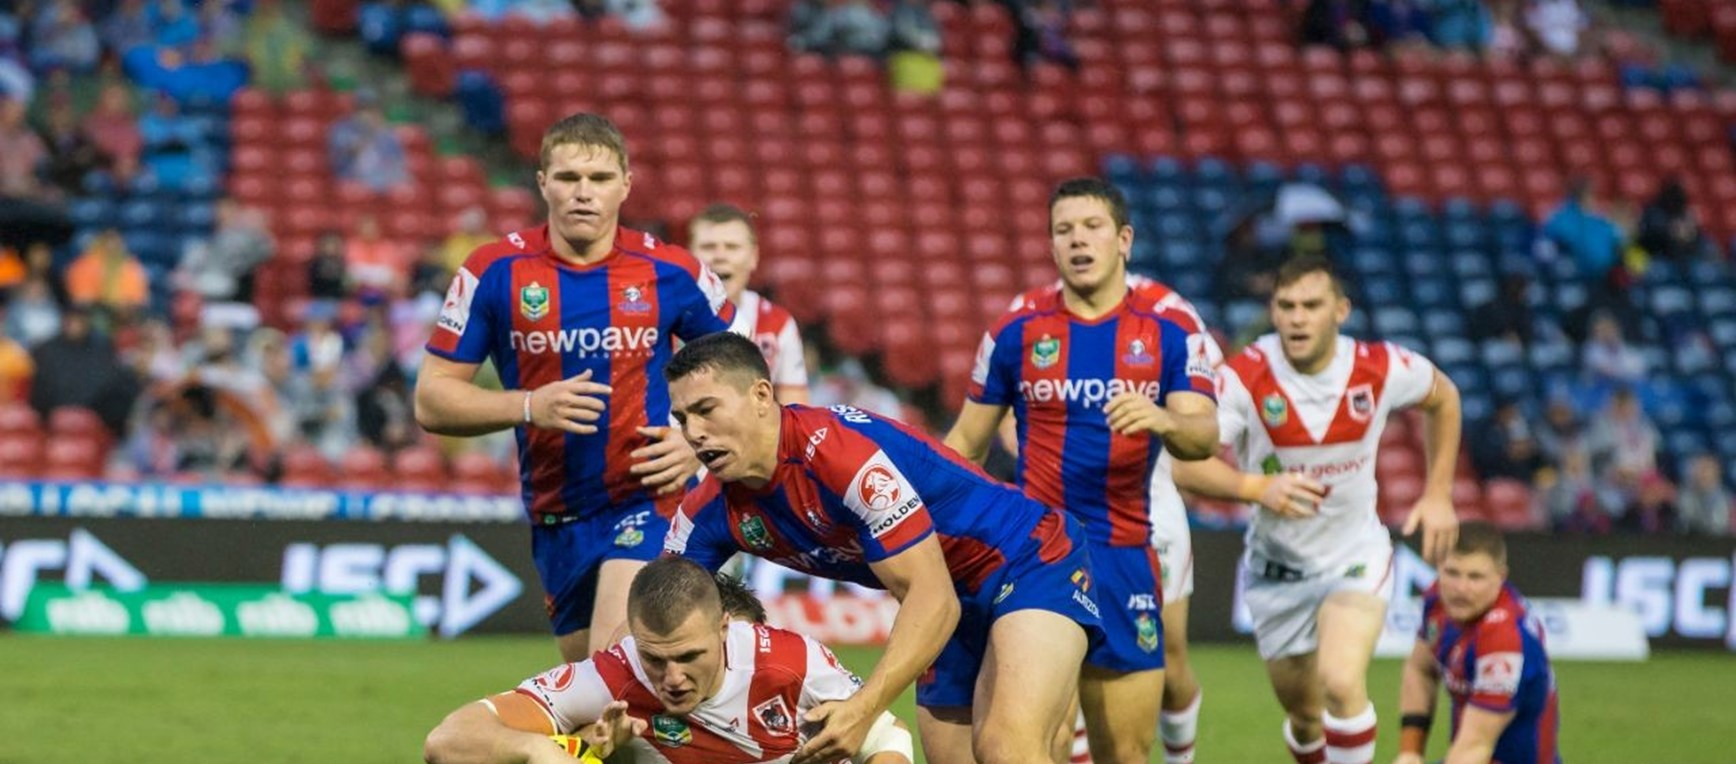 Gallery: NYC Round 5 v Newcastle Knights